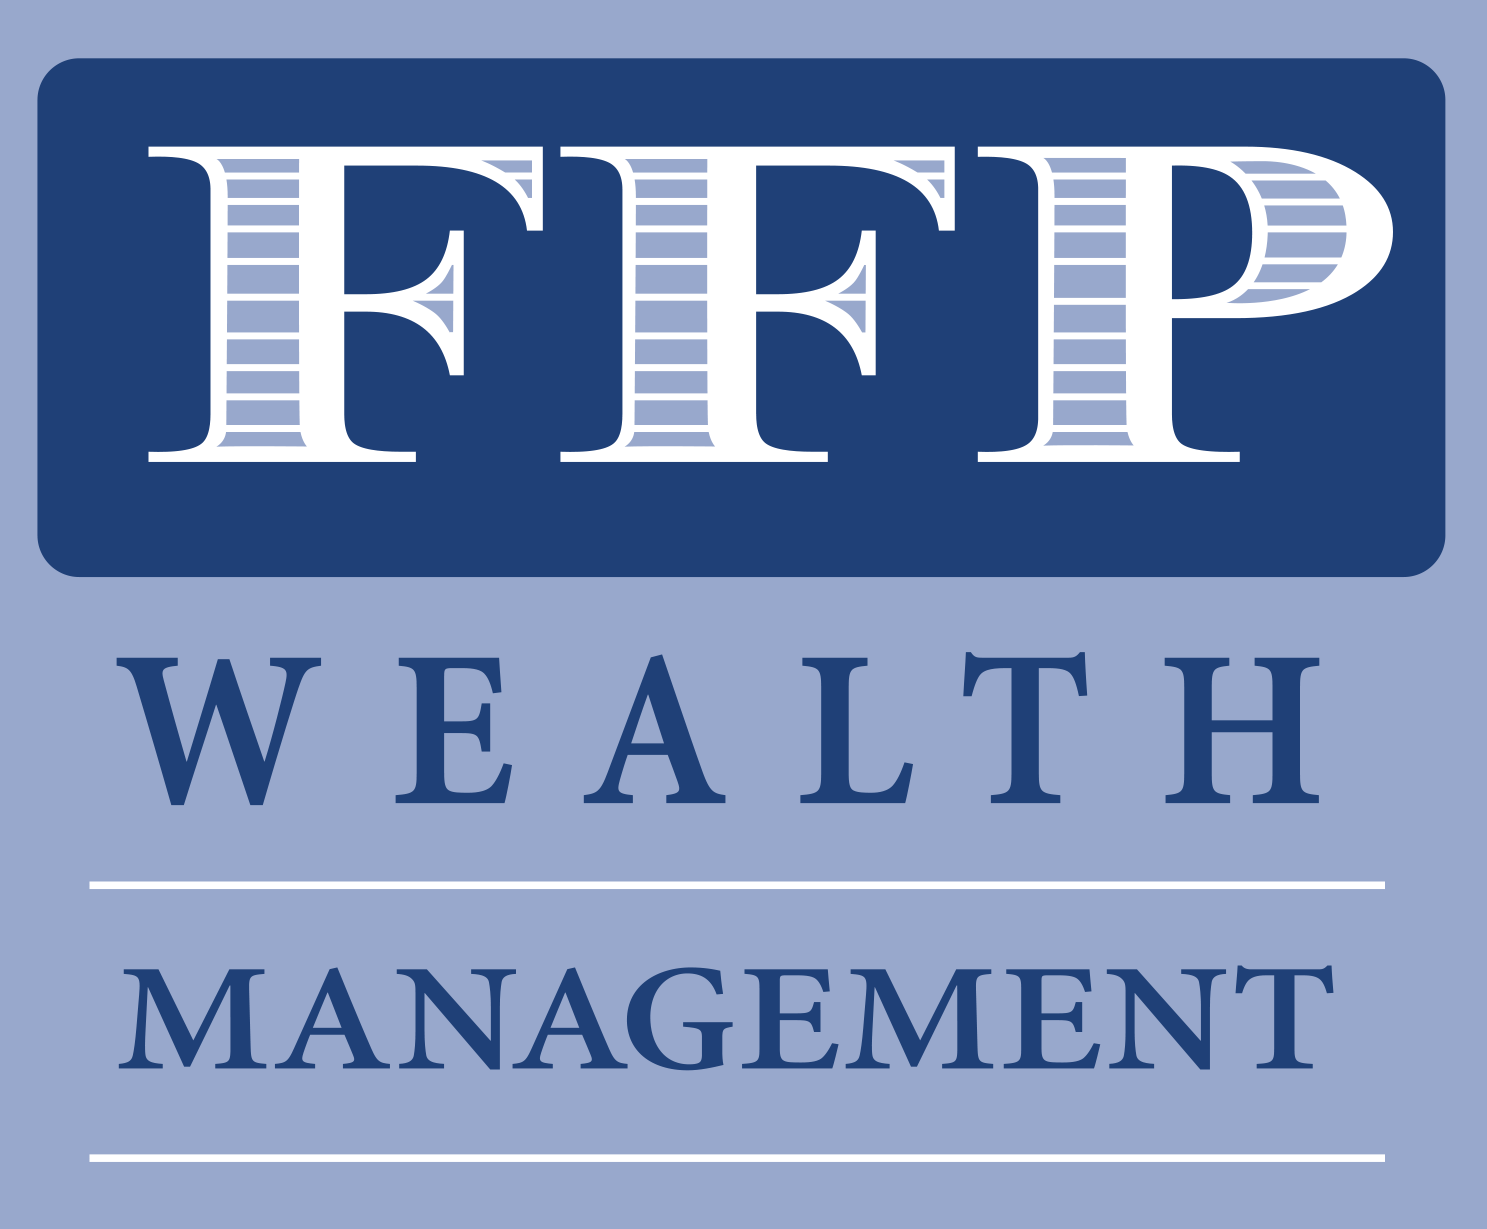 FFP Wealth Management - Bayonne, NJ